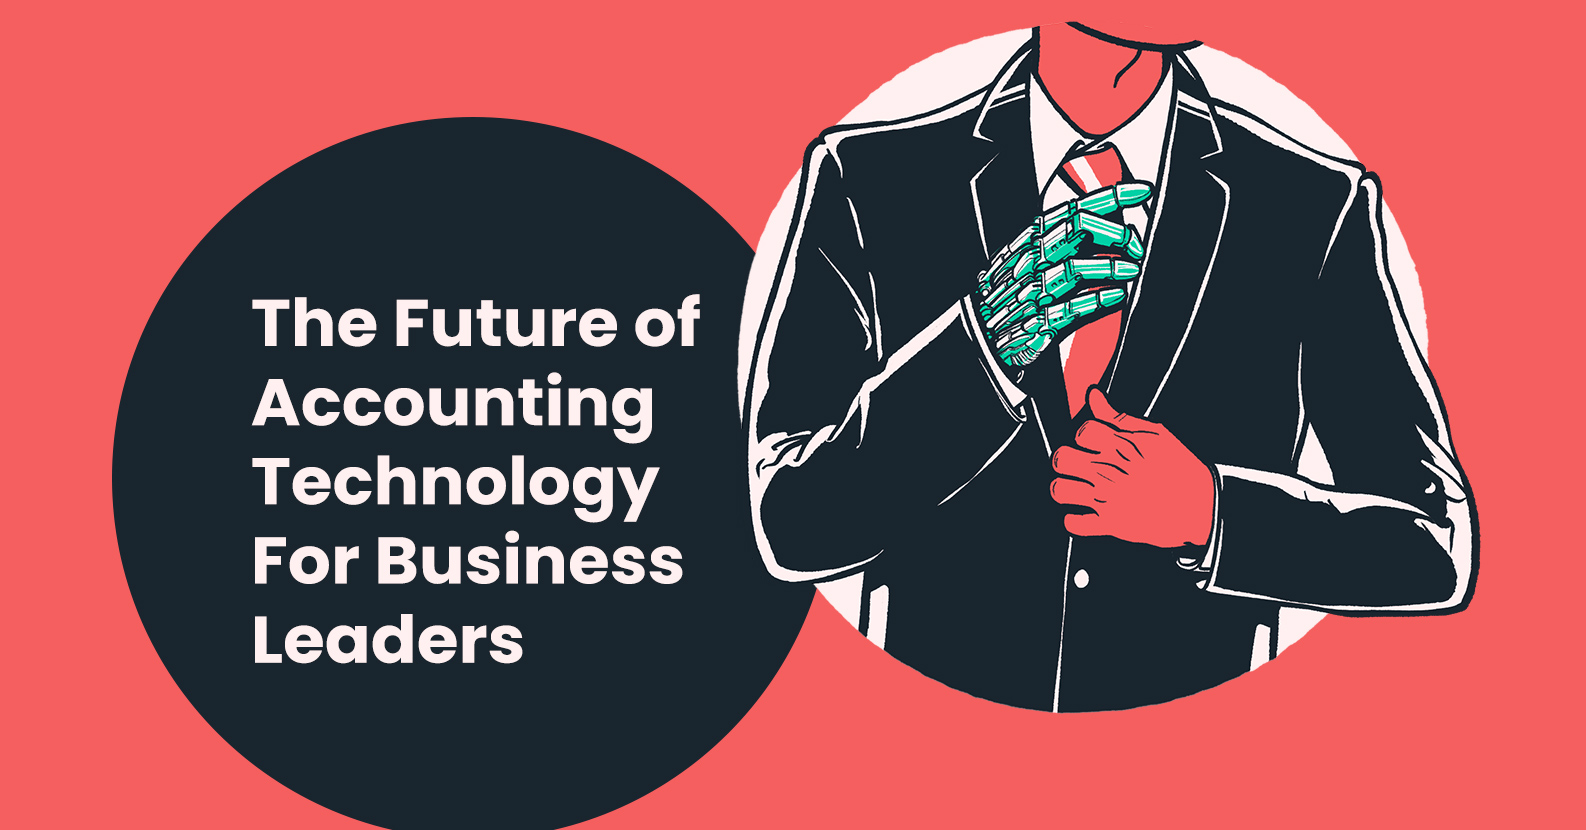 The Future of Accounting Technology for Business Leaders